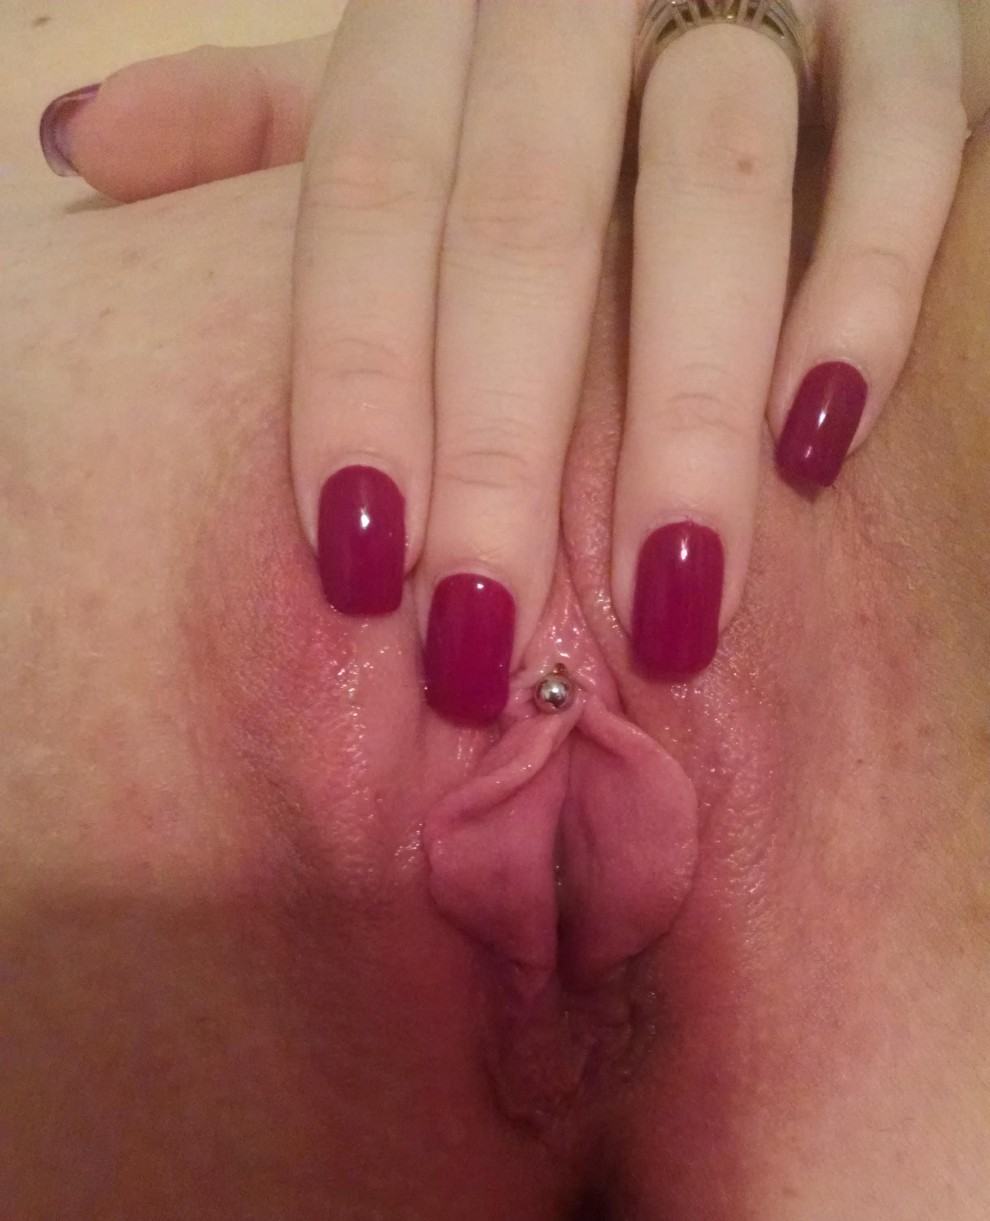 I seem to be a little wet...can someone help? [F]